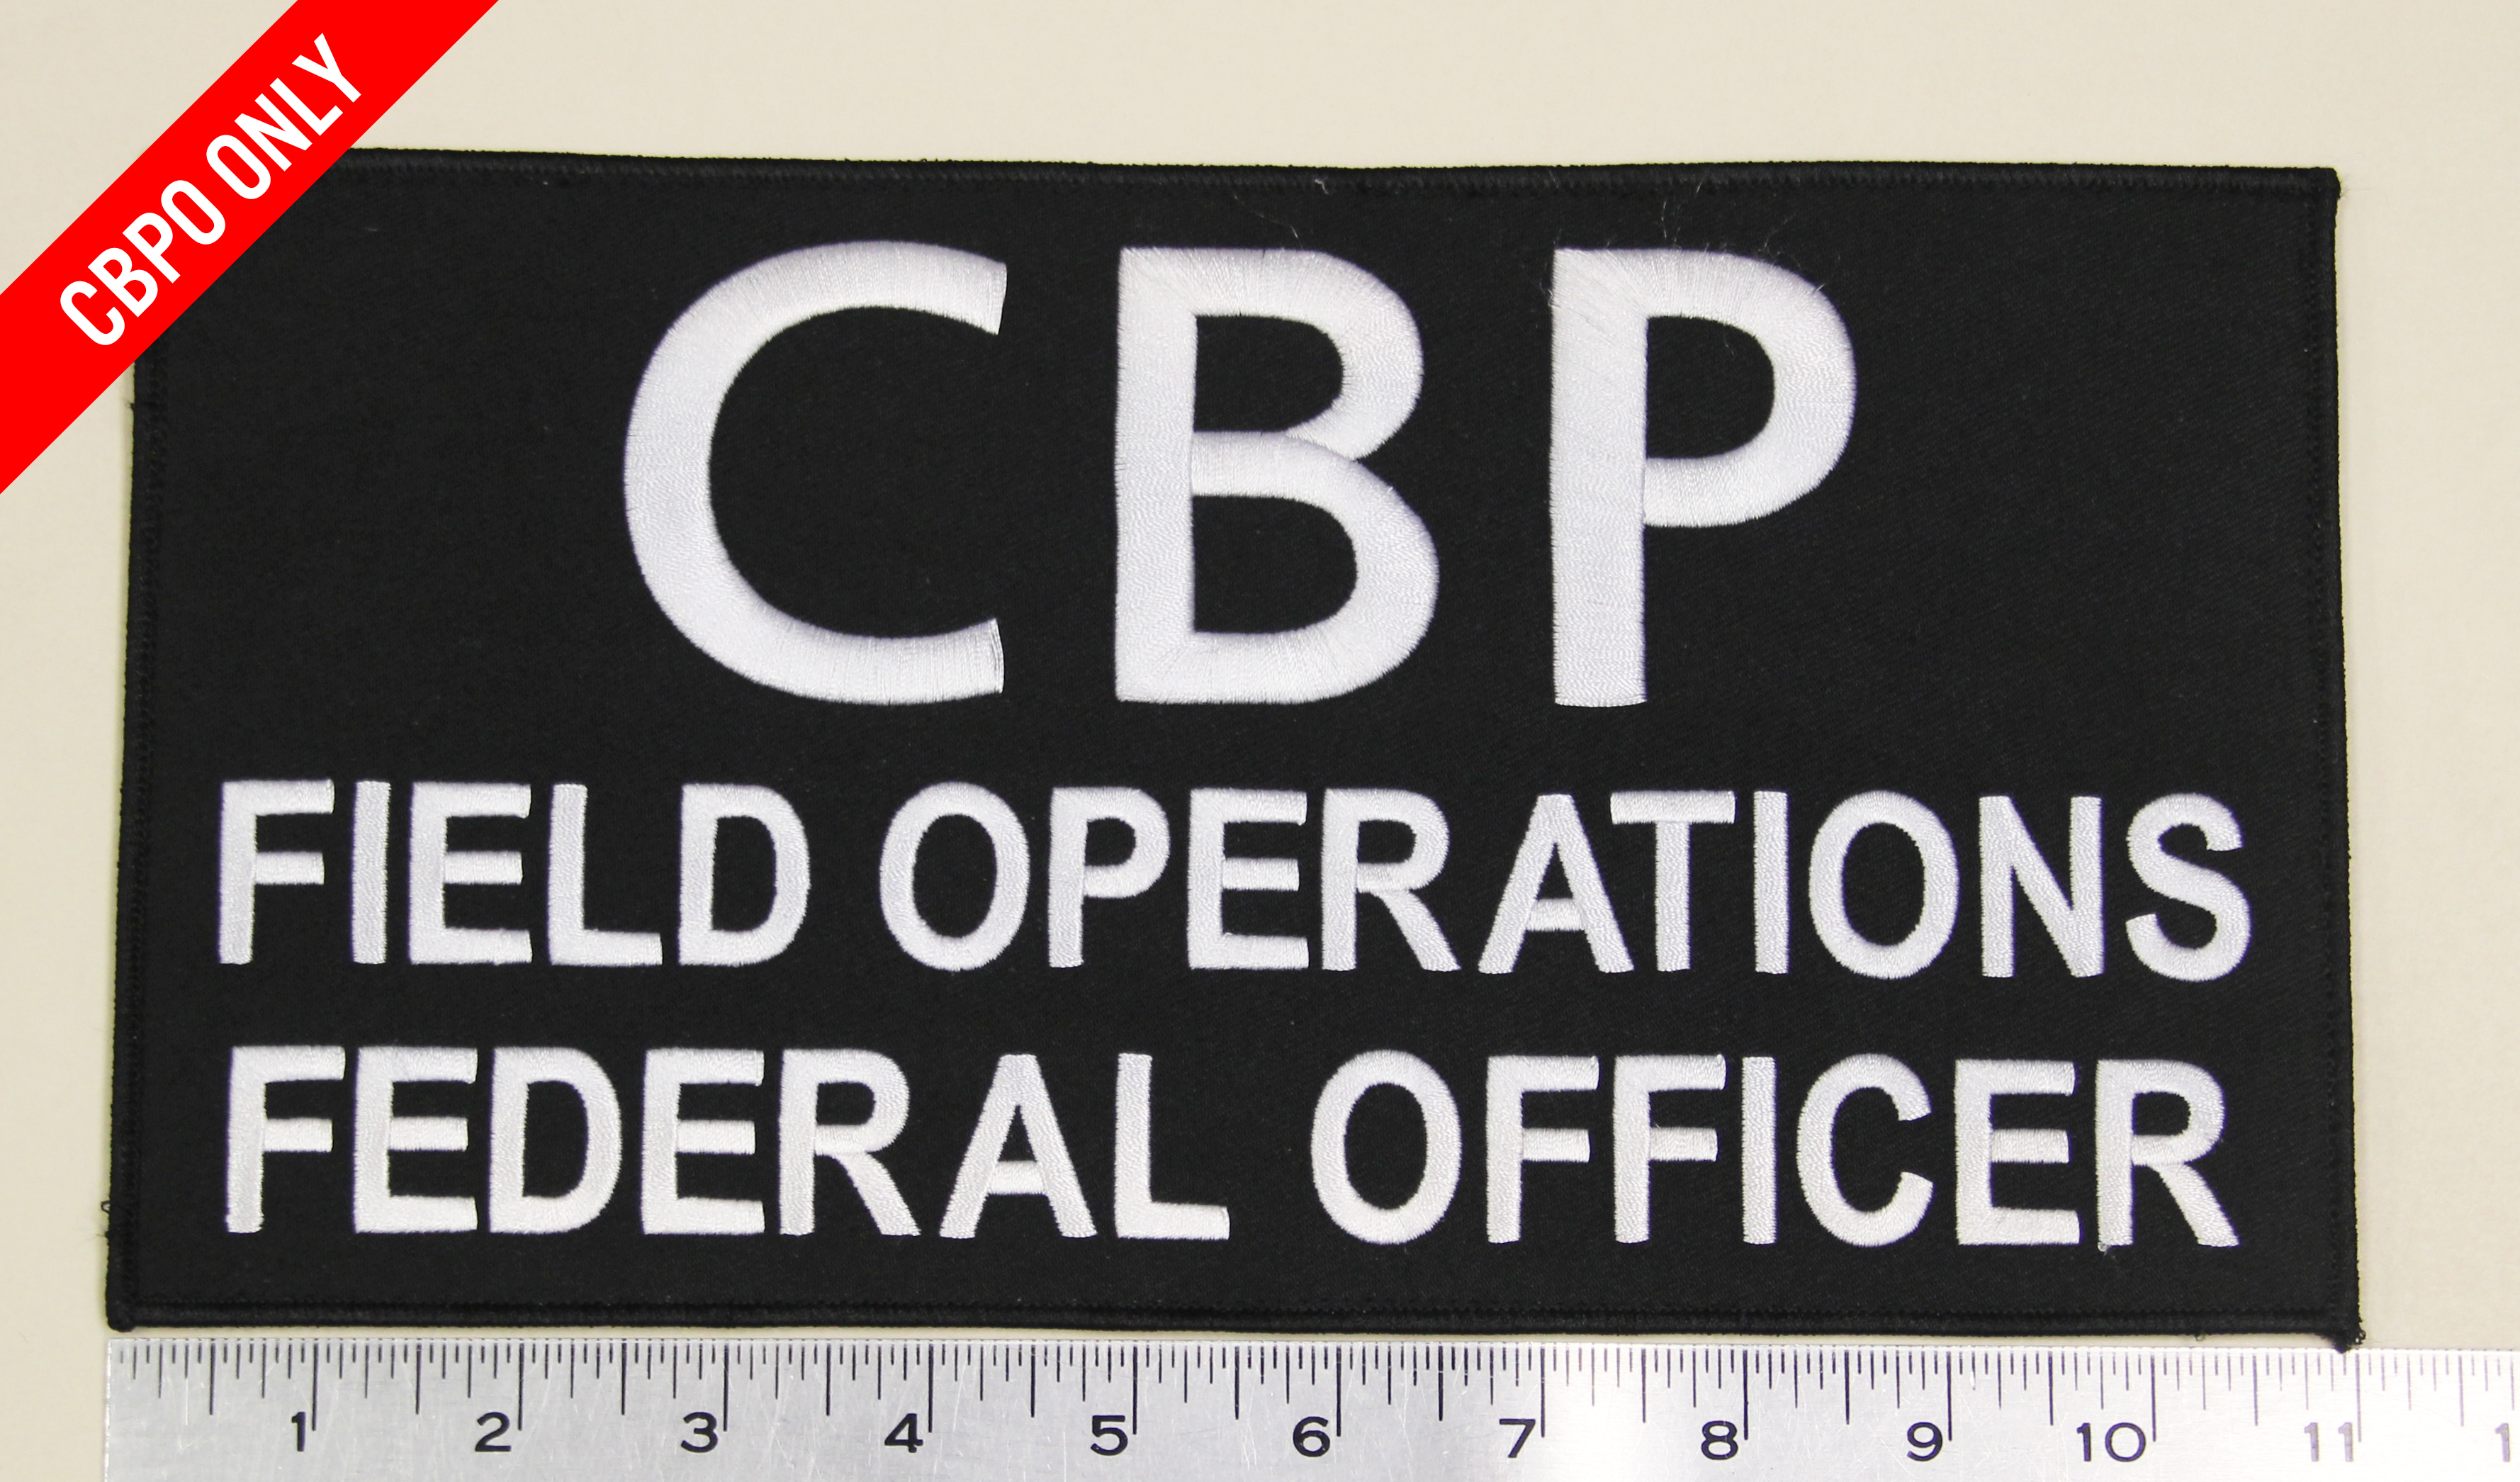 "CBP Field Operations Federal Officer LG Patch (11"" x 6"")-Nogales Tactical"